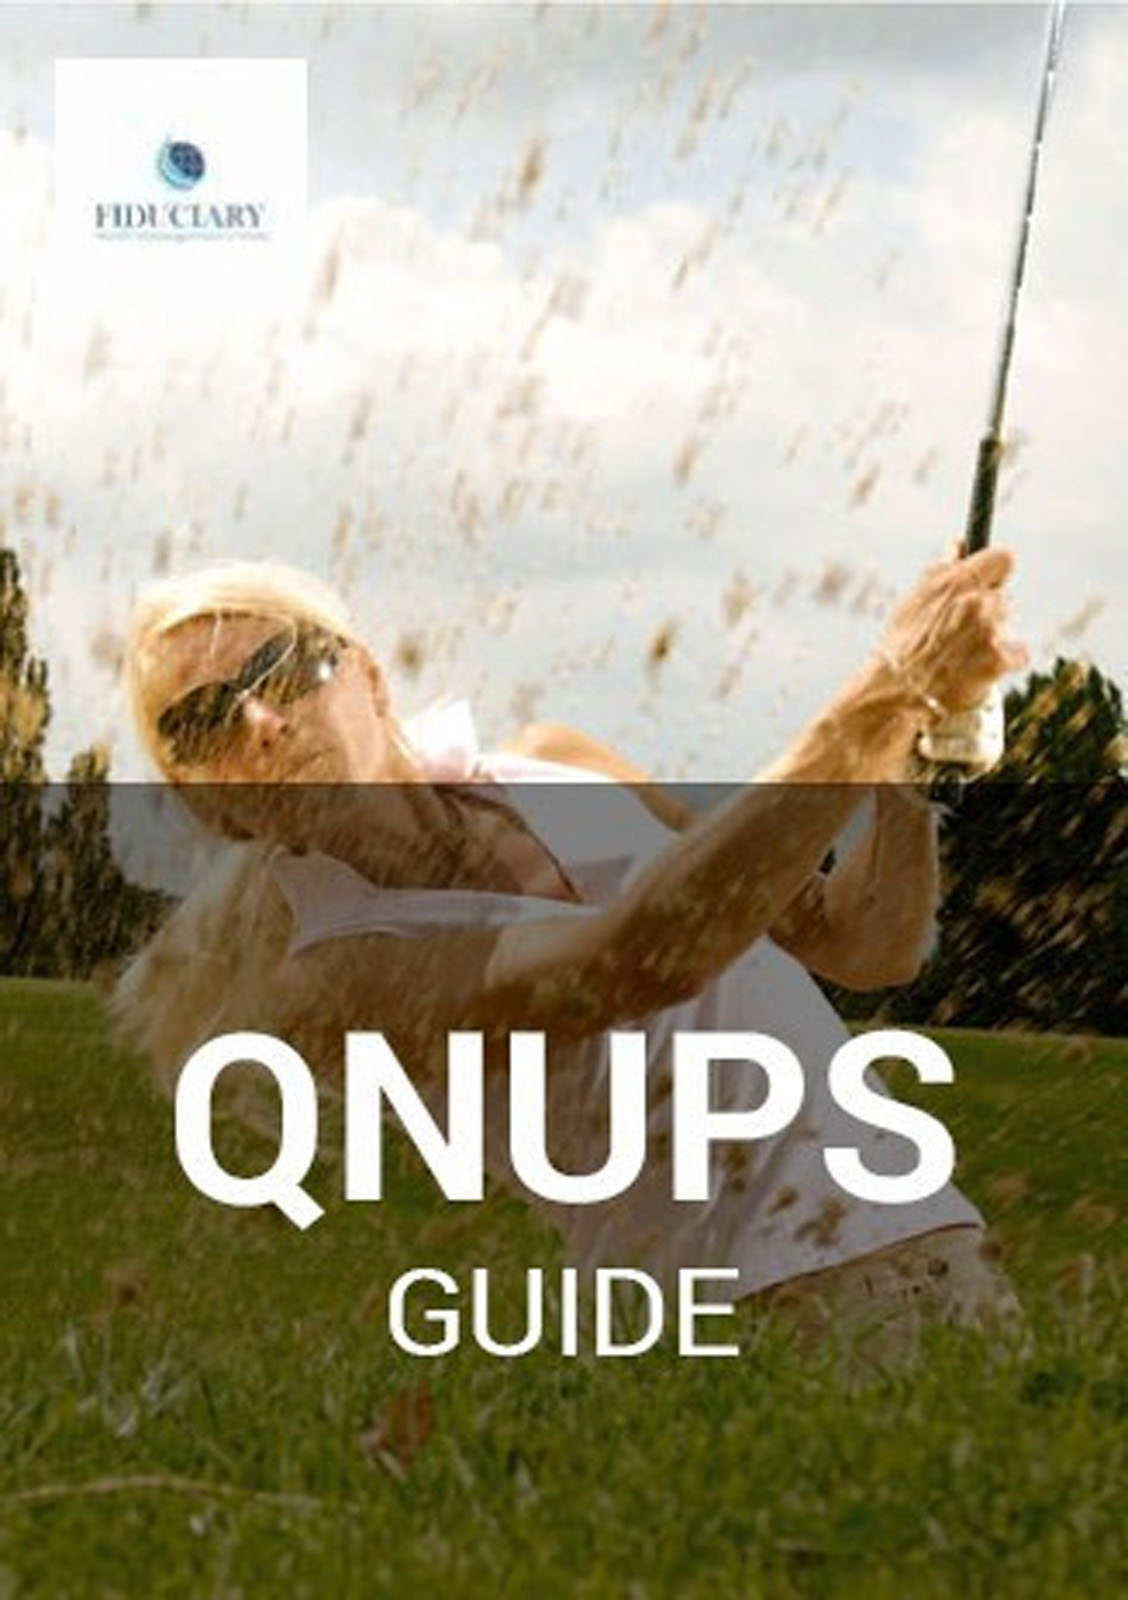 QNUPS Guide Image